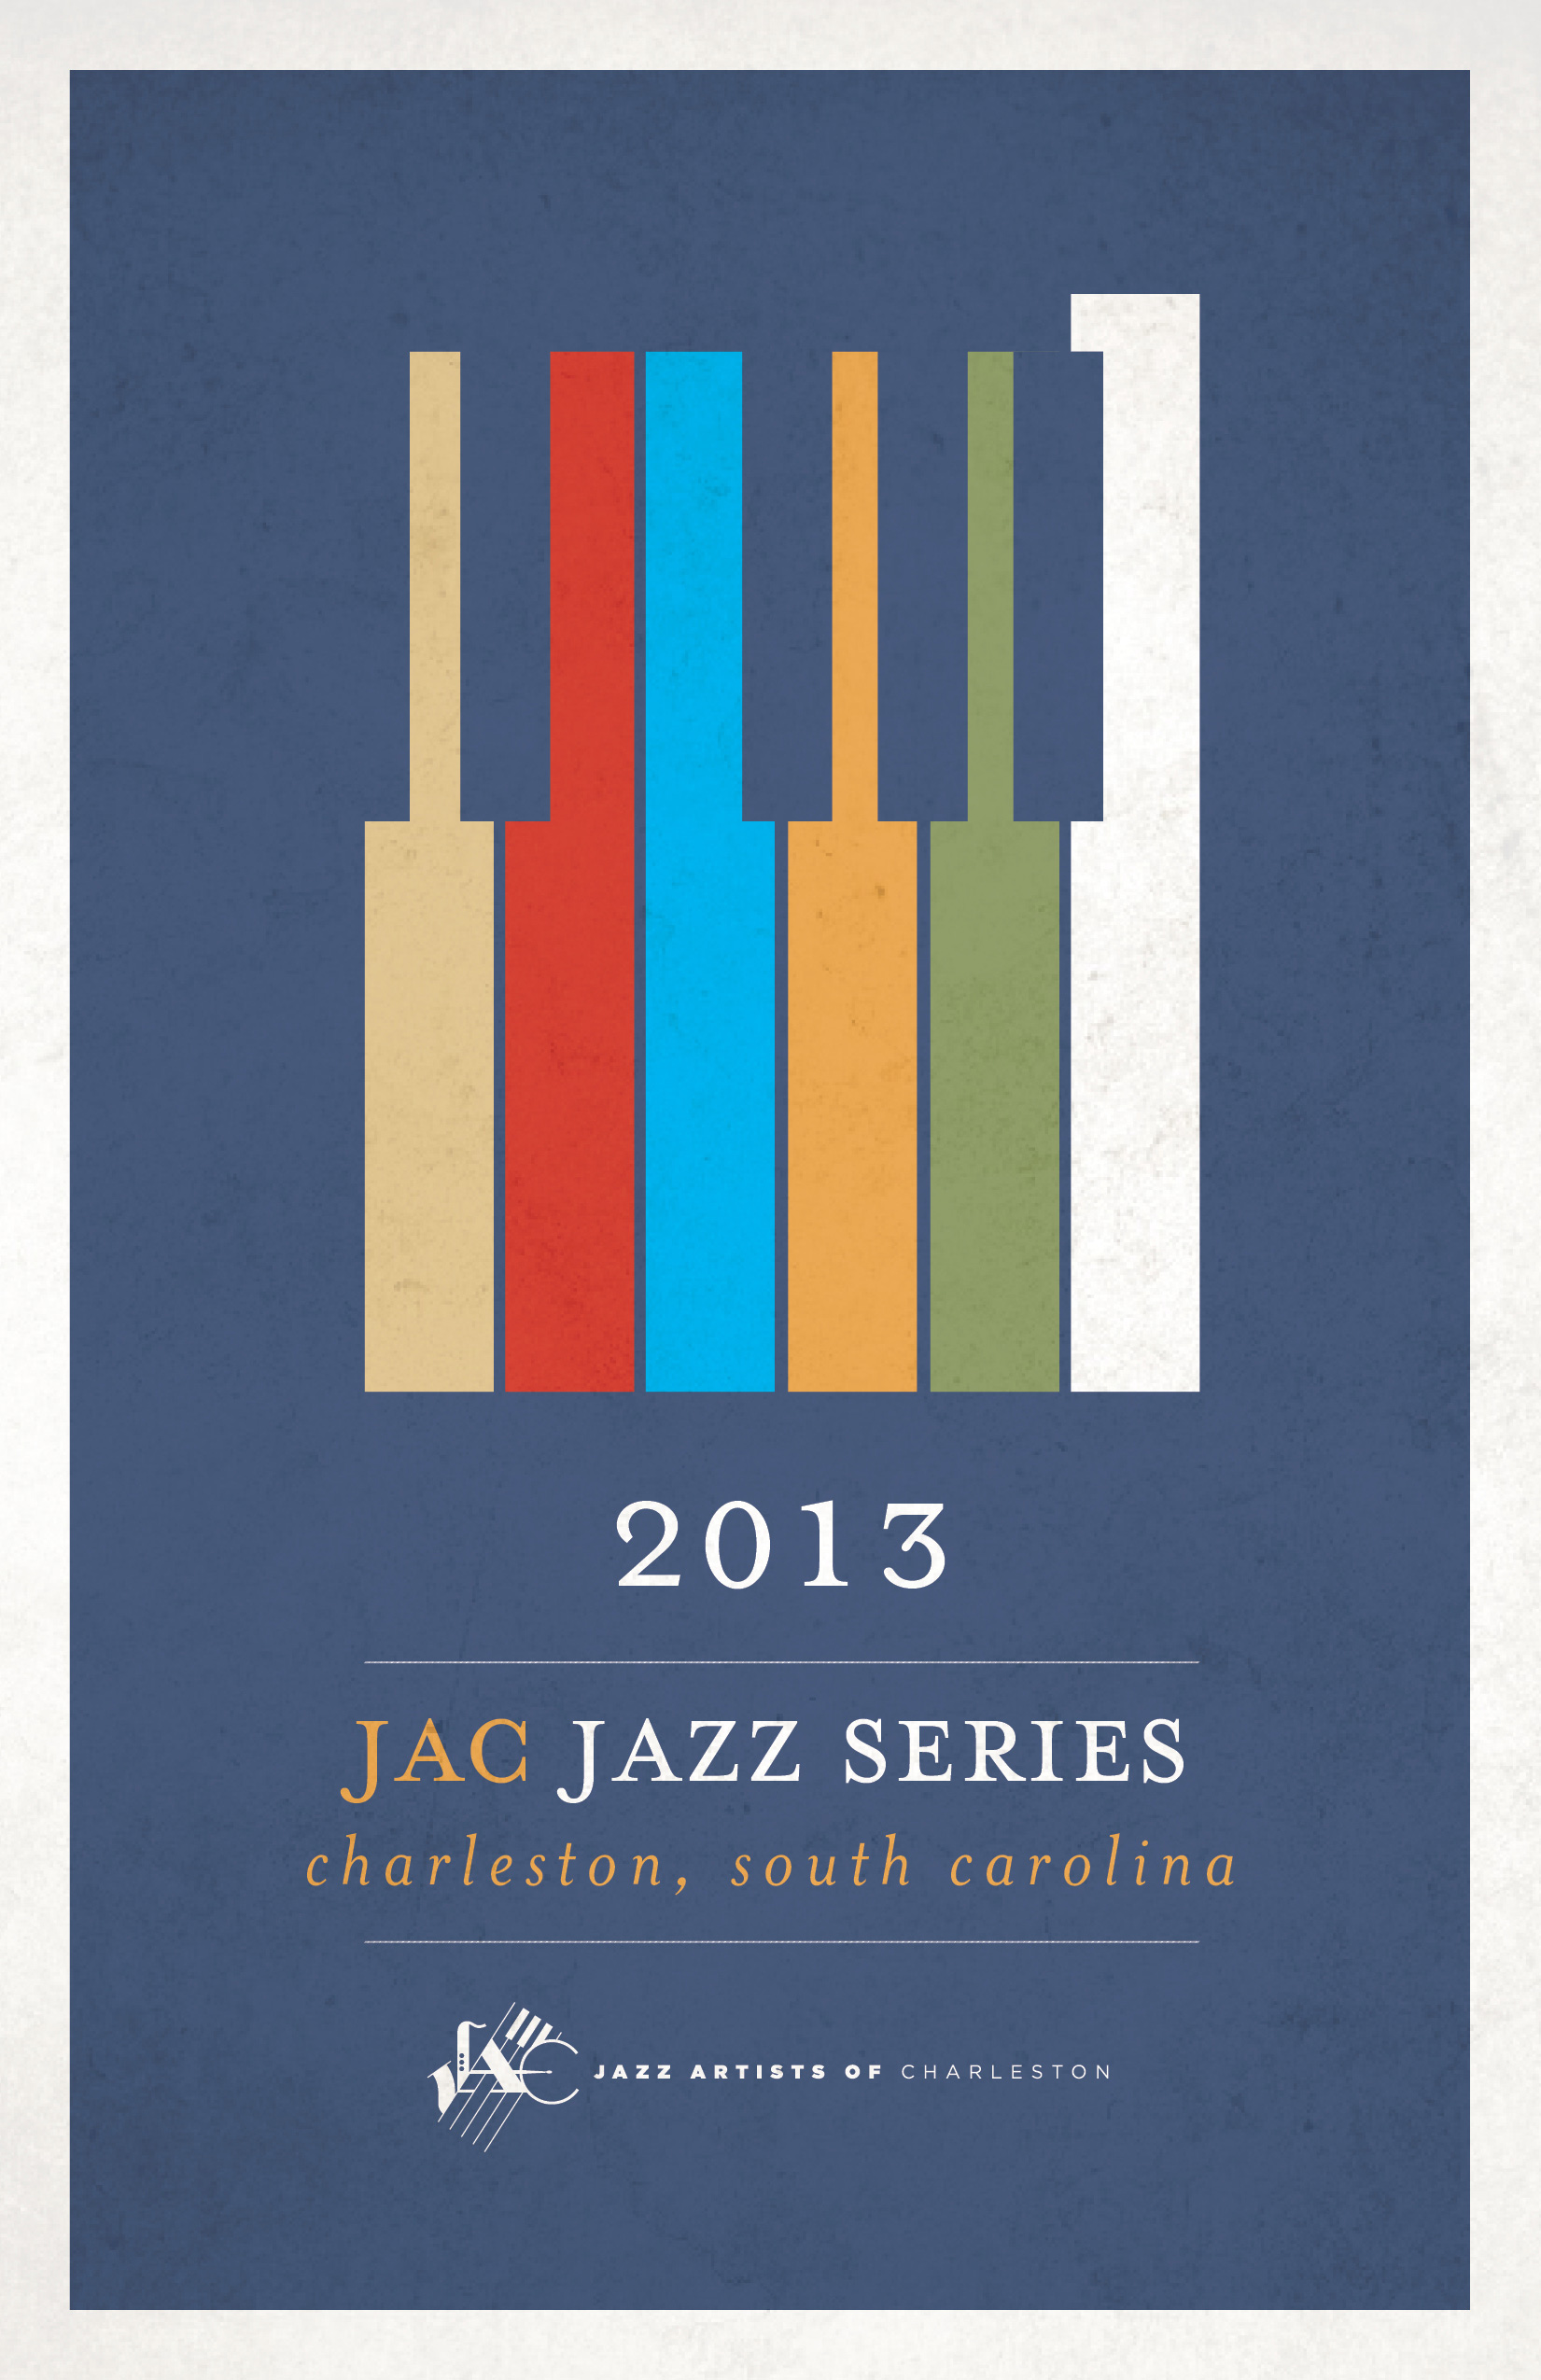 Official poster for the 2013 JAC Jazz series.